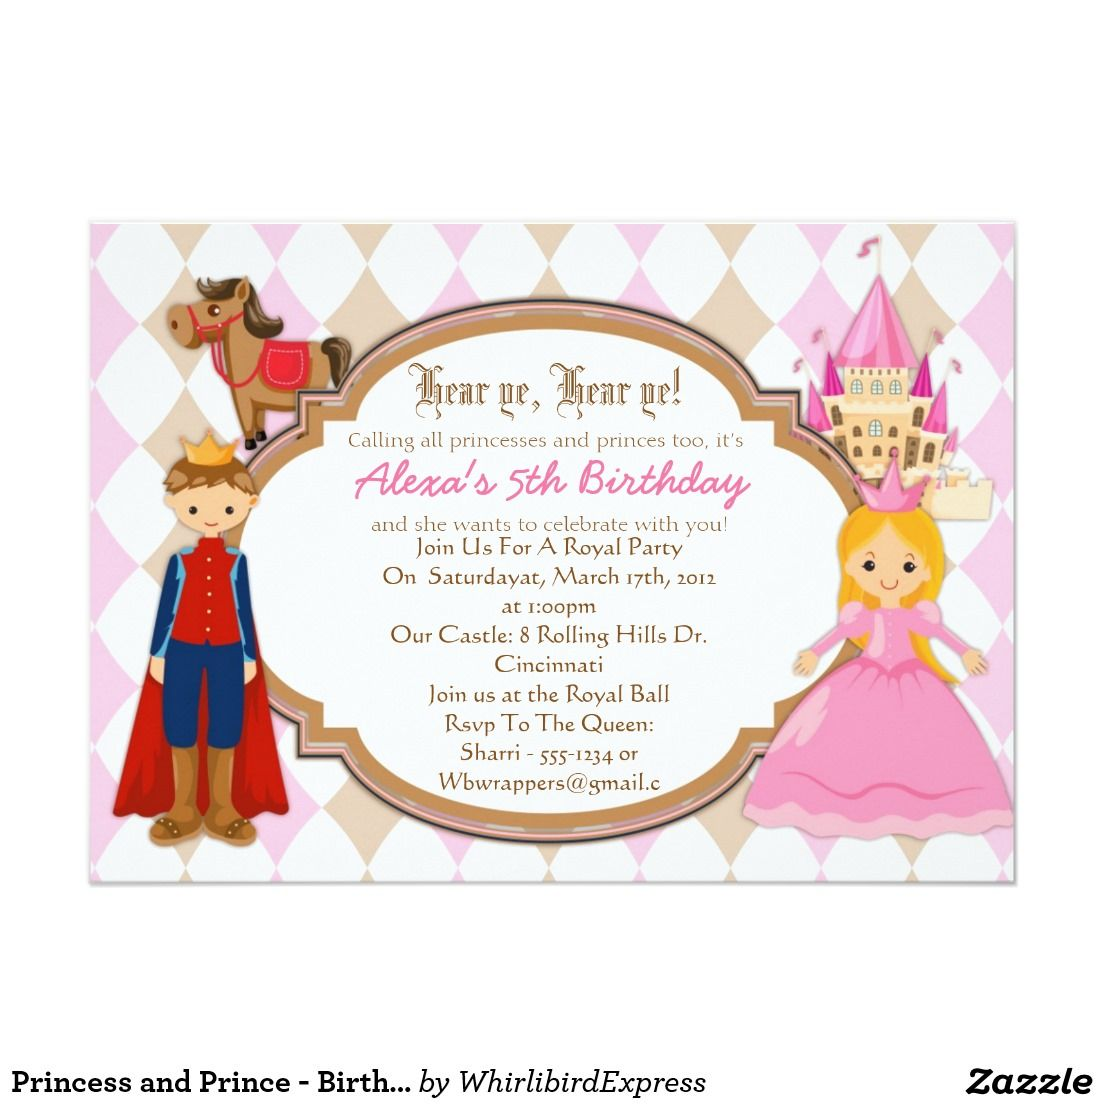 Princess and Prince - Birthday Party Invitations | party ideas ...